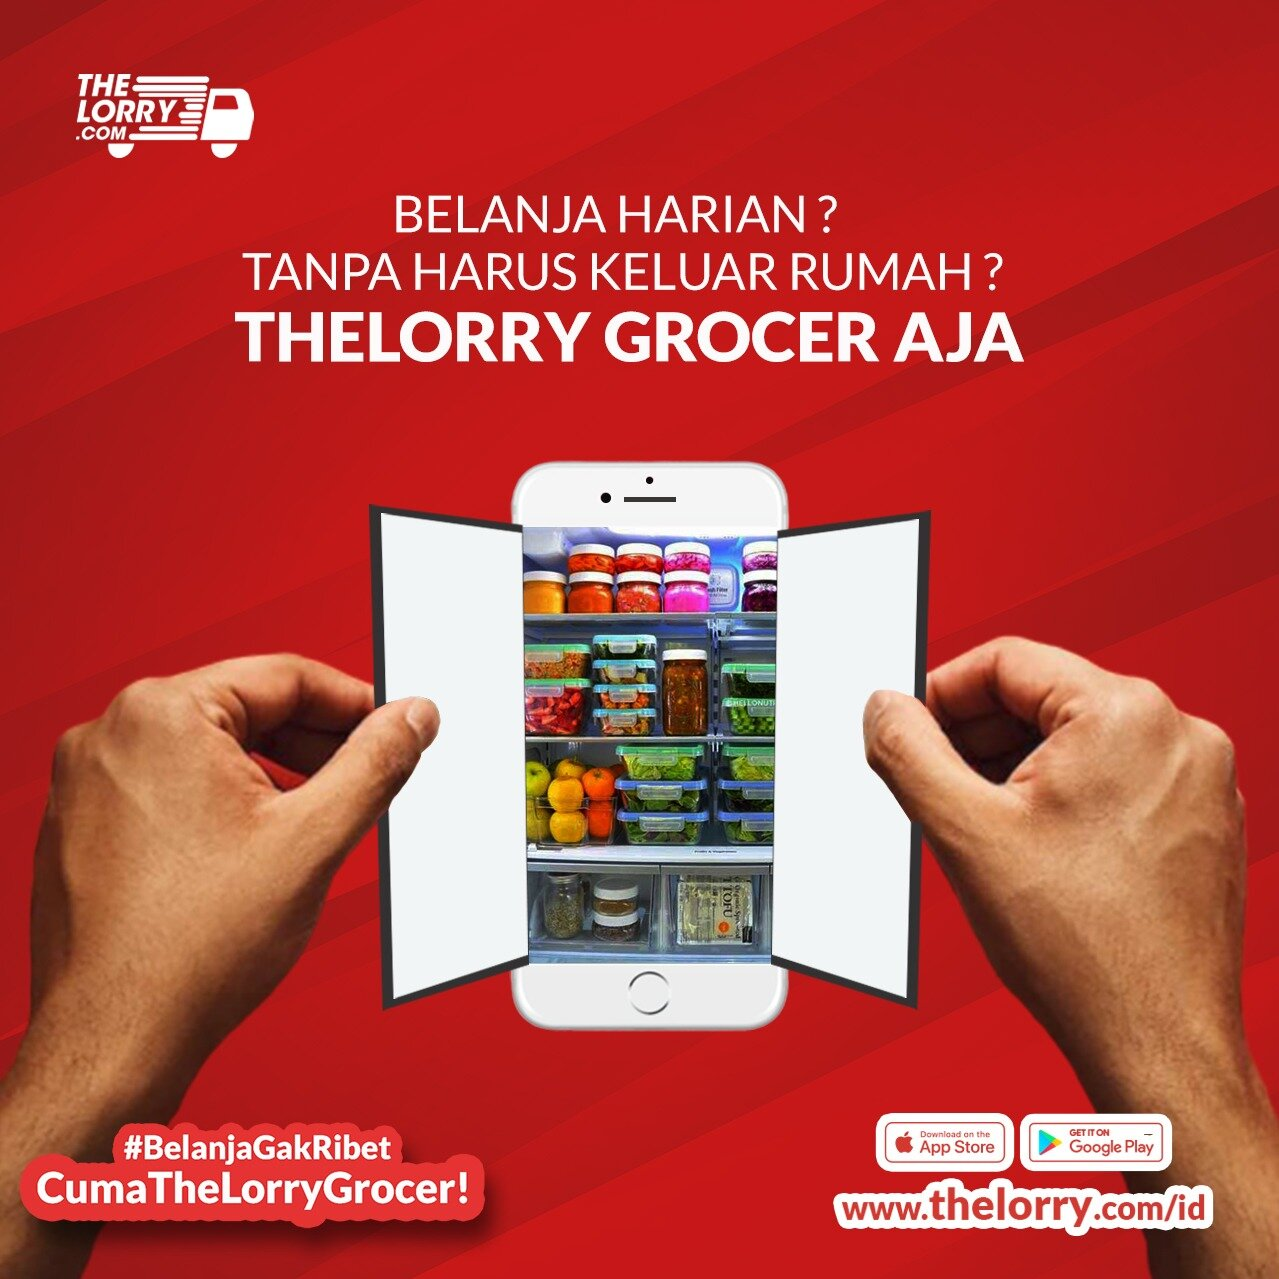 thelorry grocer